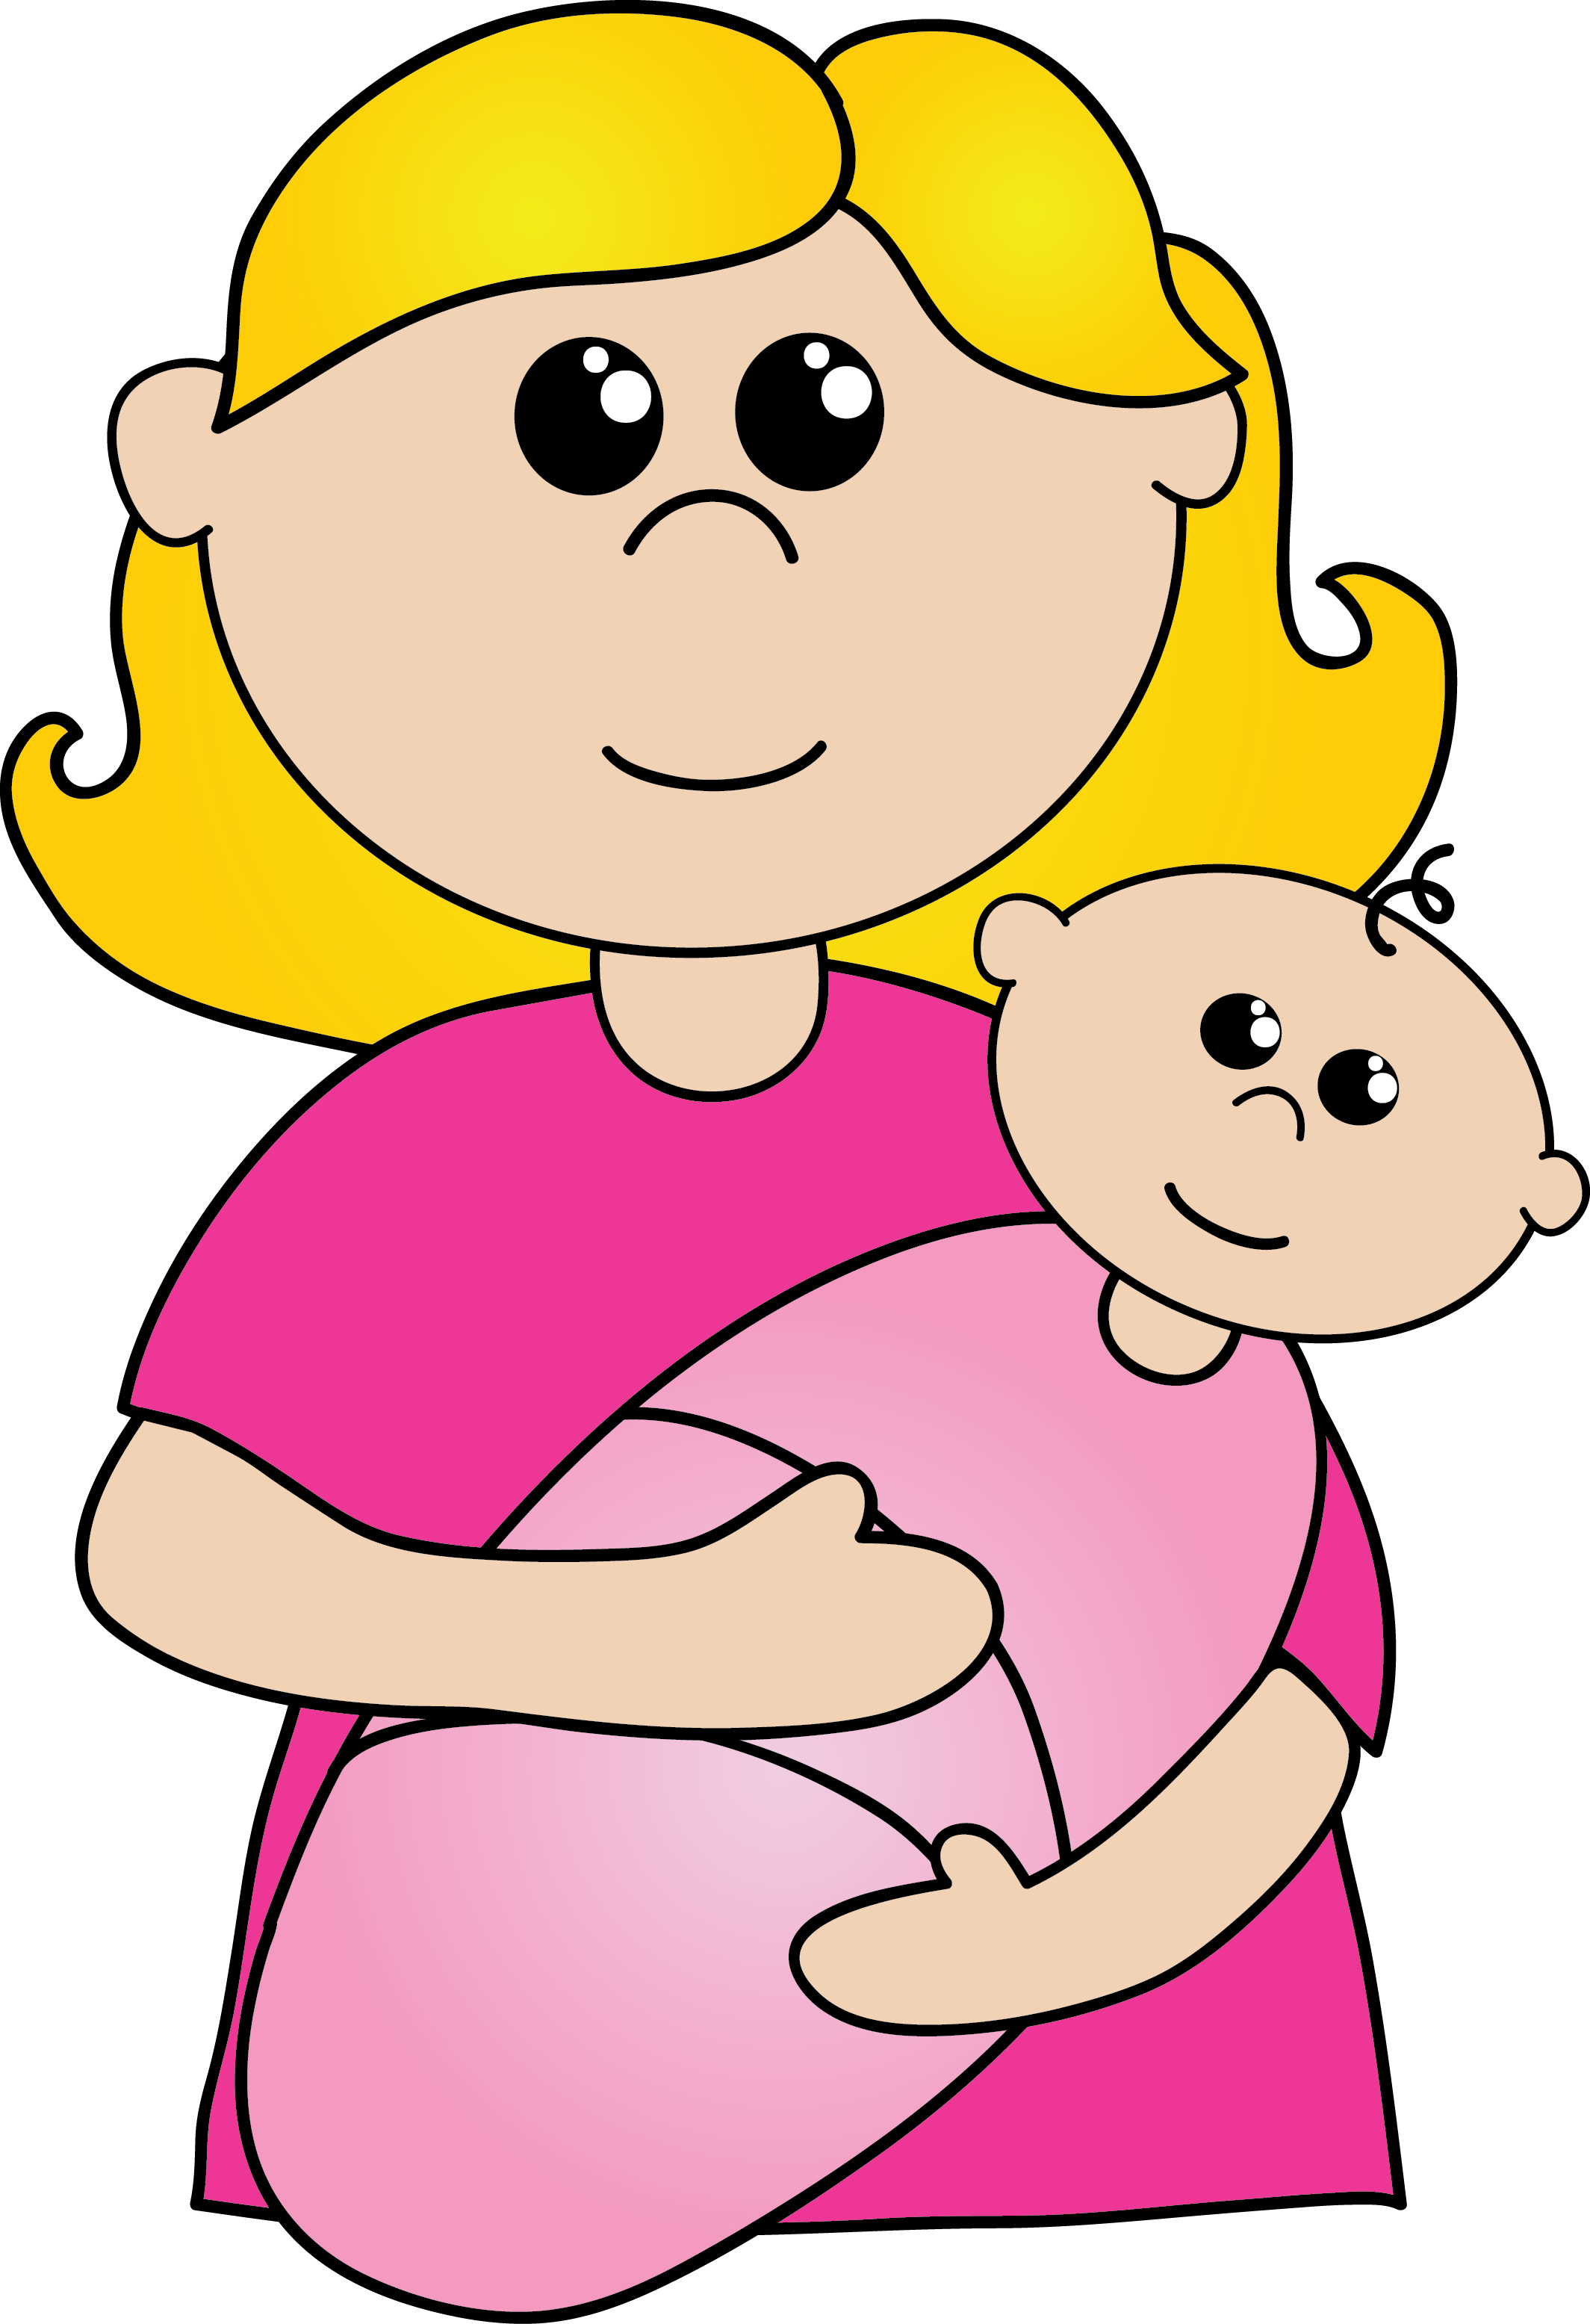 Smile clipart mother face Clipart Clipart Free Panda Clipart